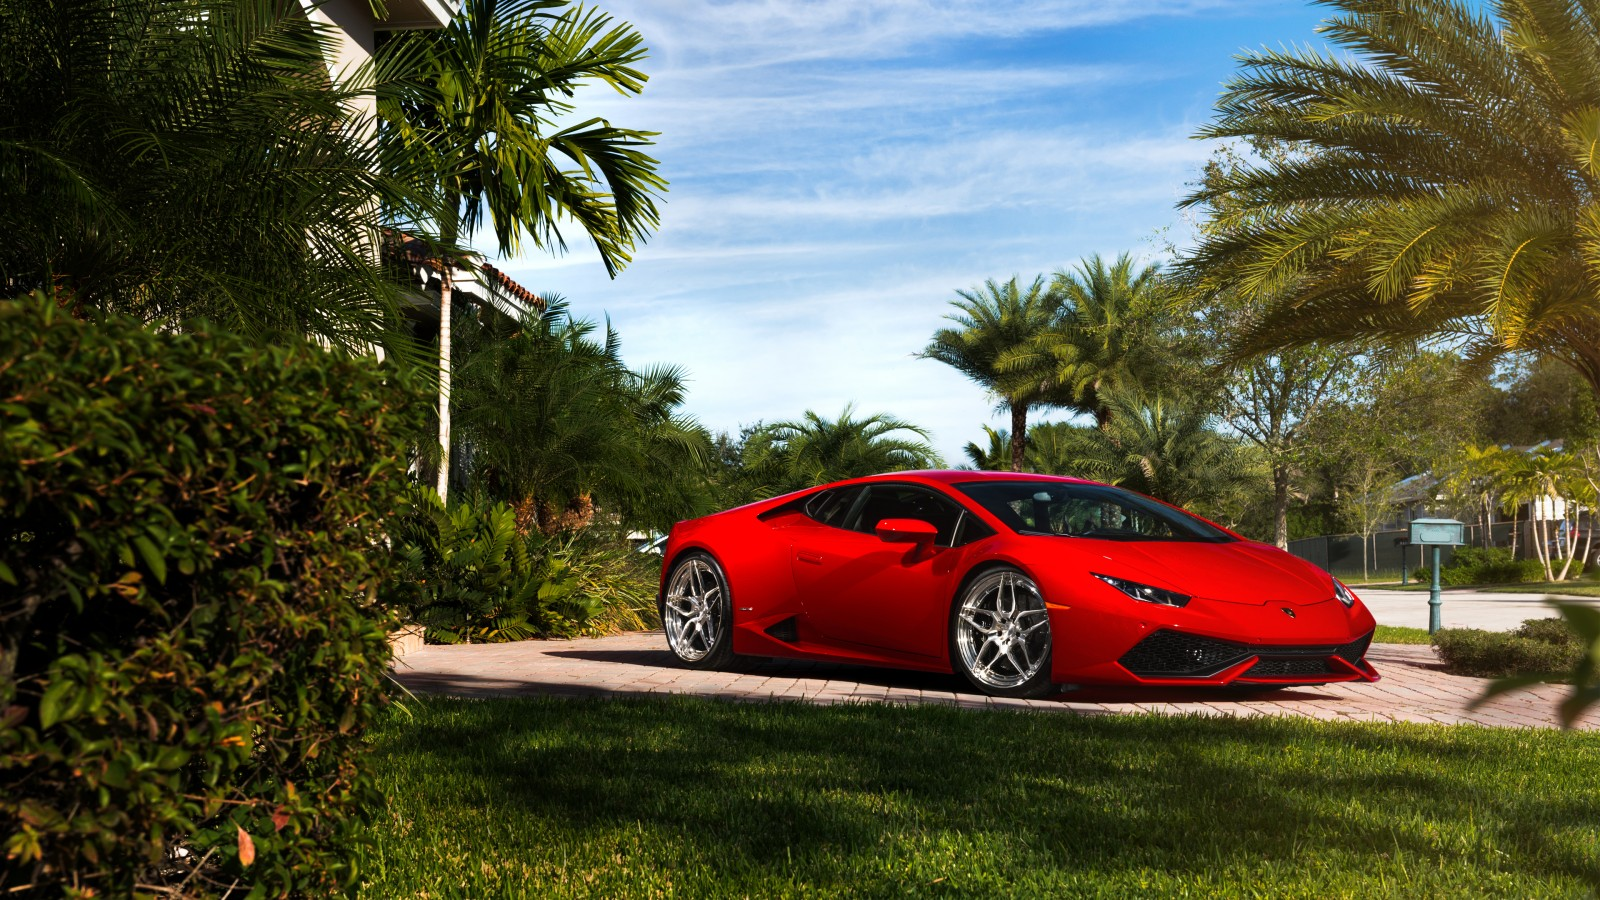 Adv1 Lamborghini Huracan 2 Wallpaper Hd Car Wallpapers